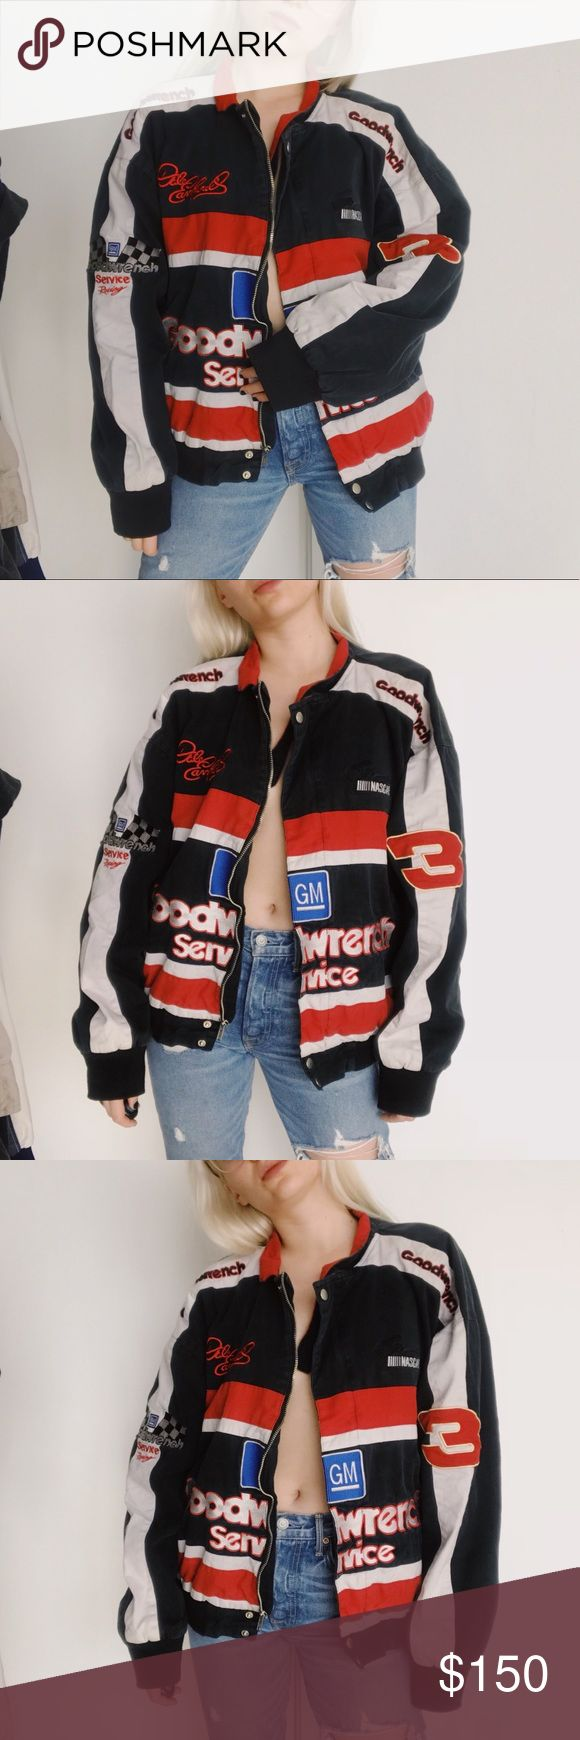 🖤 BLACK FRIDAY 50% OFF 🖤goodwrench nascar jacket IM OBSESSED WITH THISSSSS ❣️❣️❣️ the coolest jacket possibly ever. covered in amazon patches and embroidered details! pair with your favorite denim, or black leather pants 🖤  * size faded off tag... fits like a Large  * poly / satin lining    ❣ ABSOLUTELY NO PP OR TRADES ❣ ⭐️ model is 5'3 and typically a XS ⭐️ Nasty Gal Jackets & Coats Utility Jackets